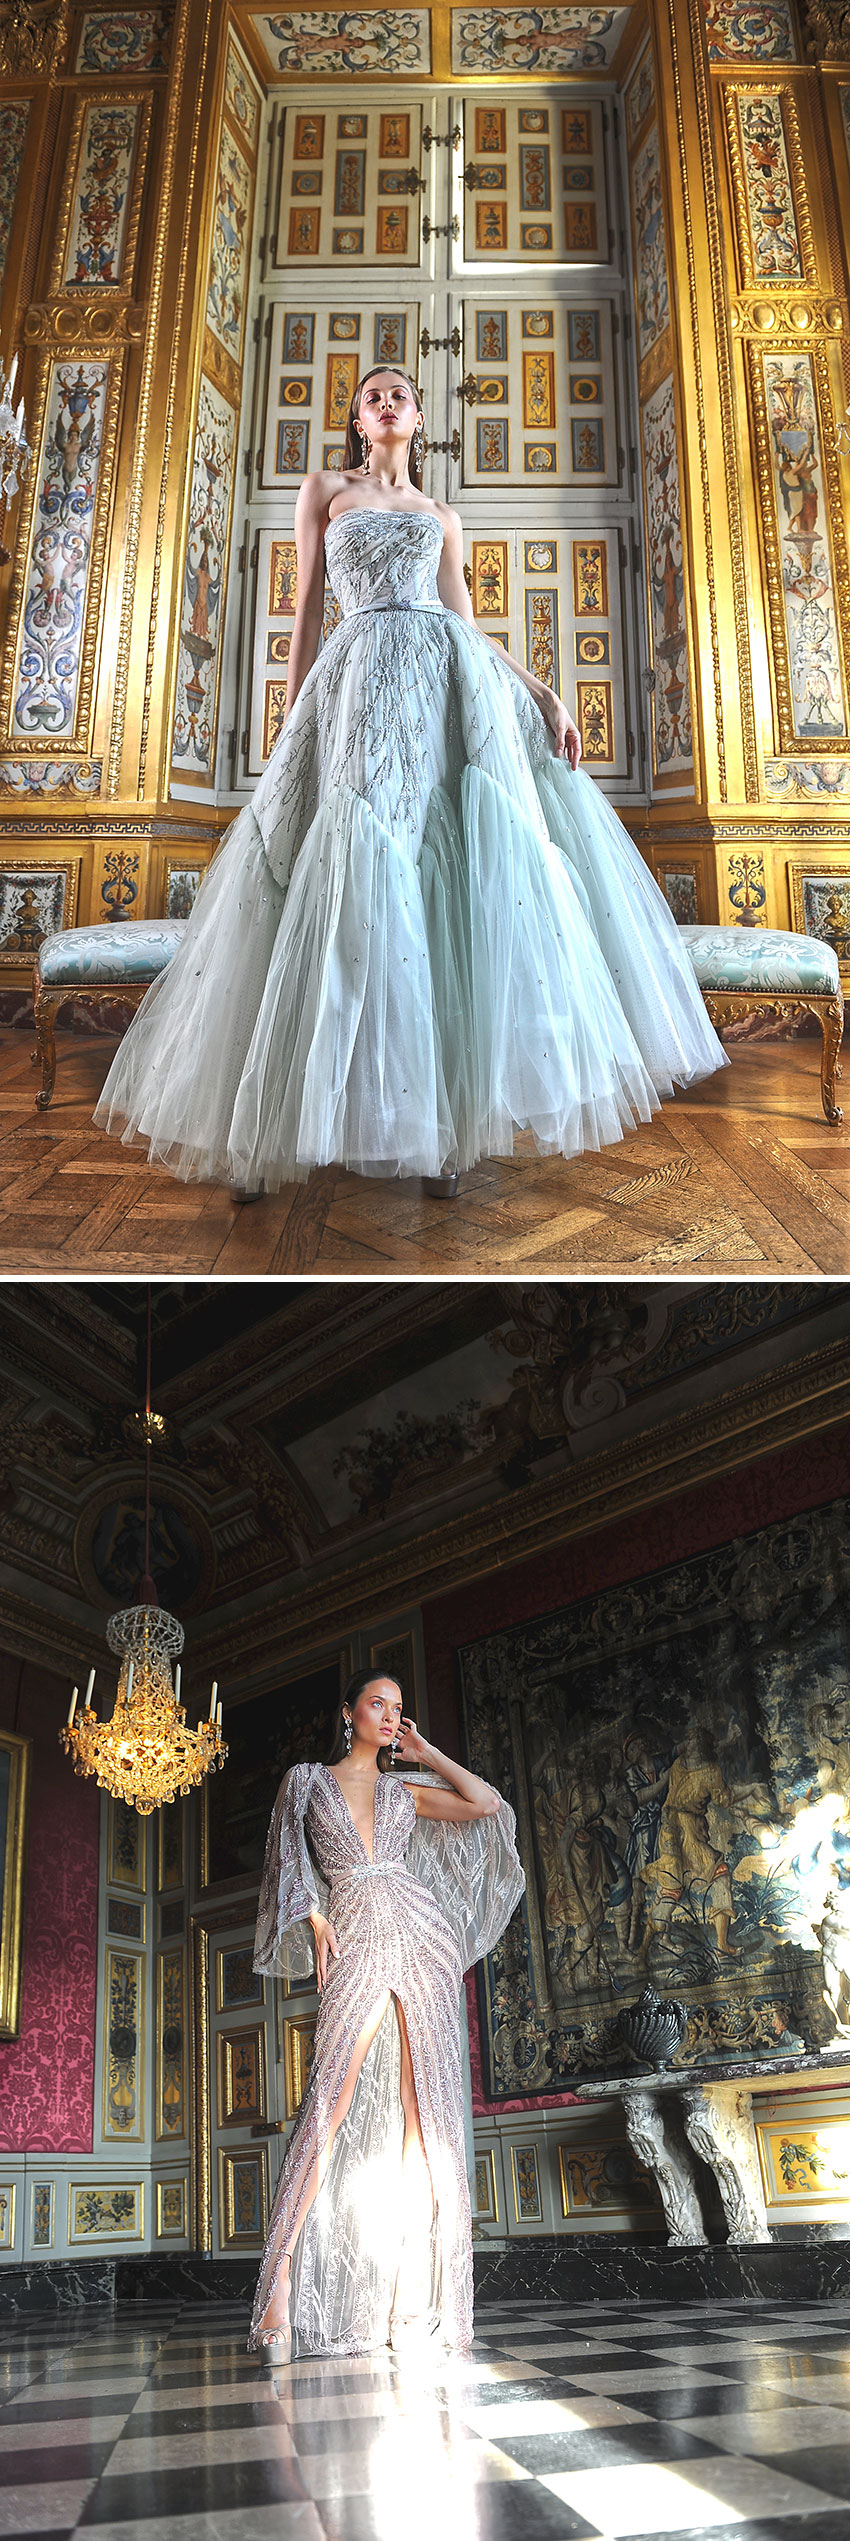 Ziad Nakad Haute Couture Spring Summer 2021 collection includes majestic transparent dresses i